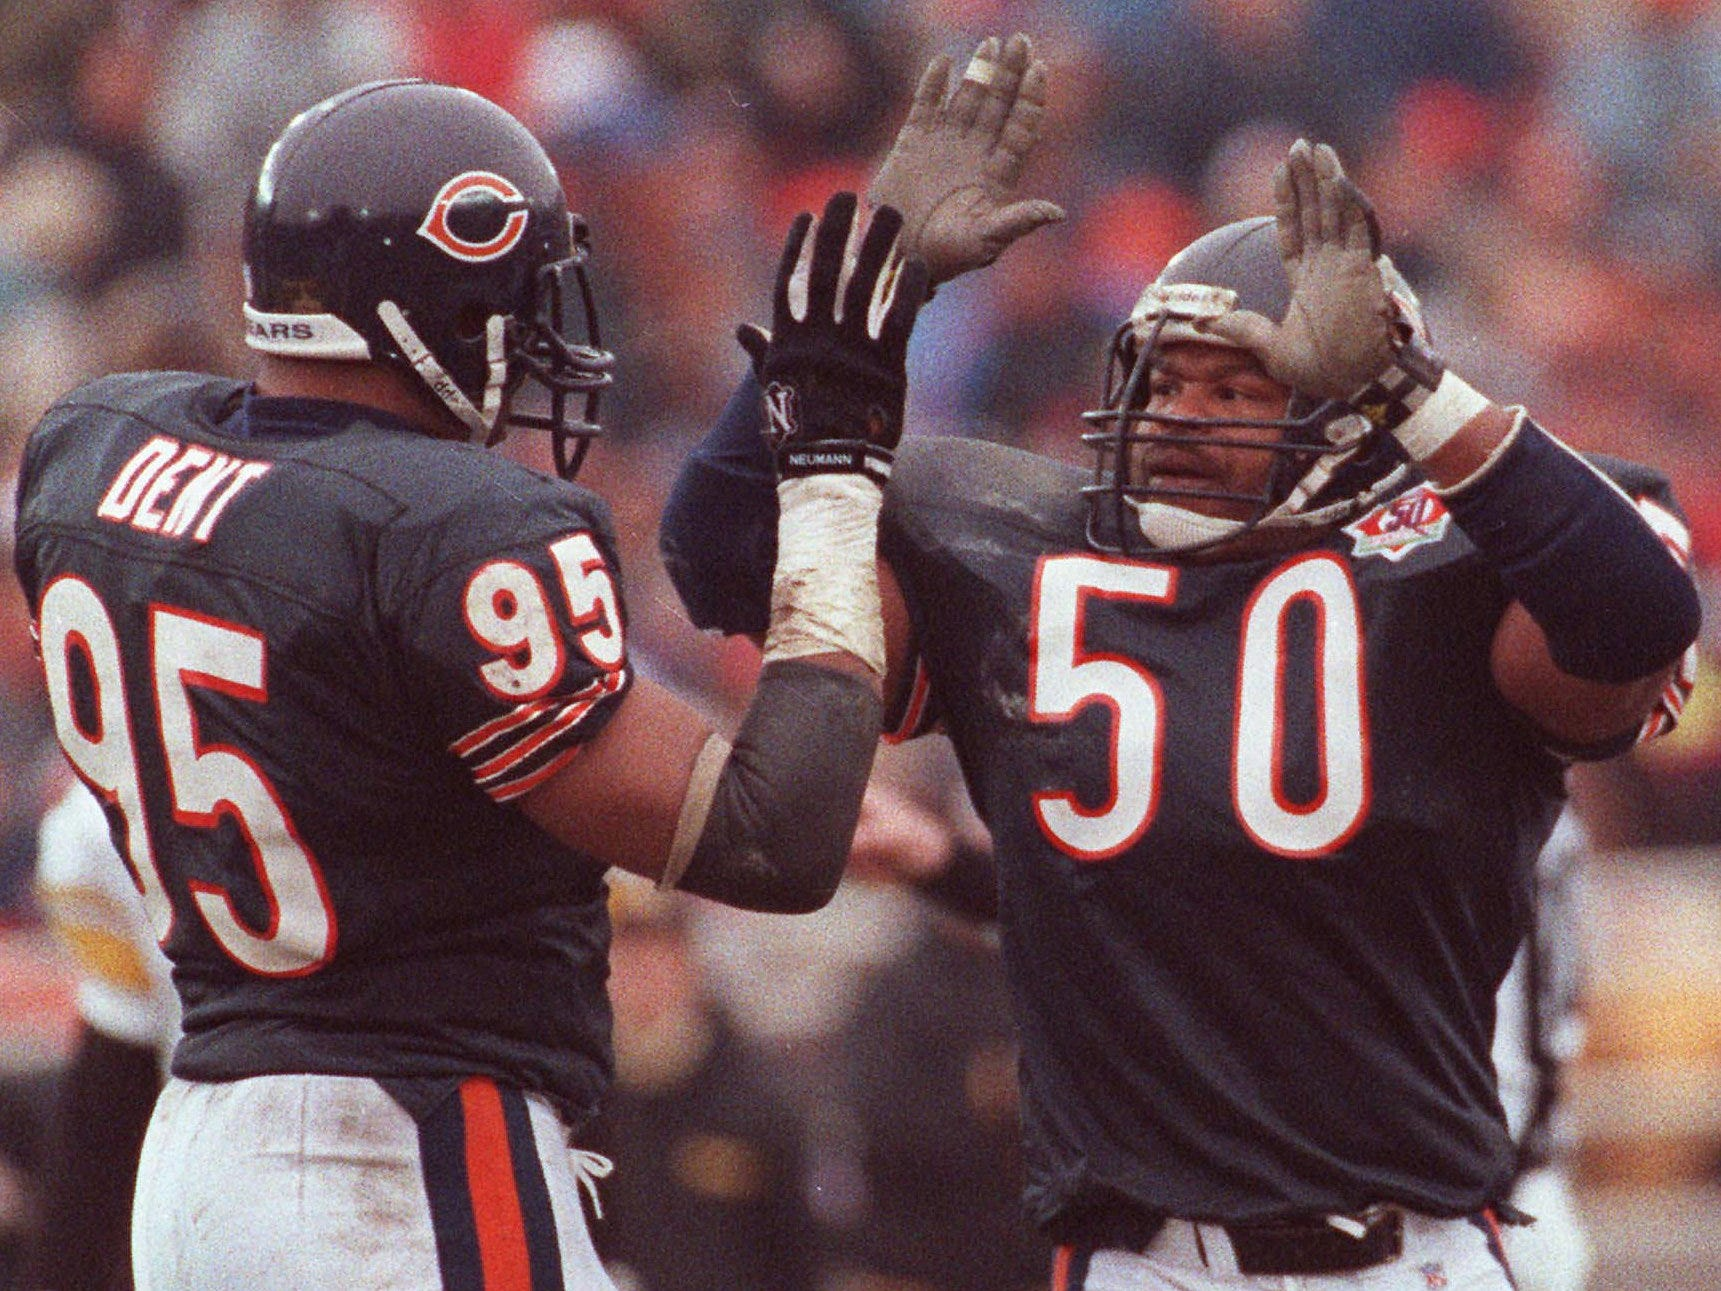 Mike Singletary - Teamed with Richard Dent to form one of the scariest defenses in league history.